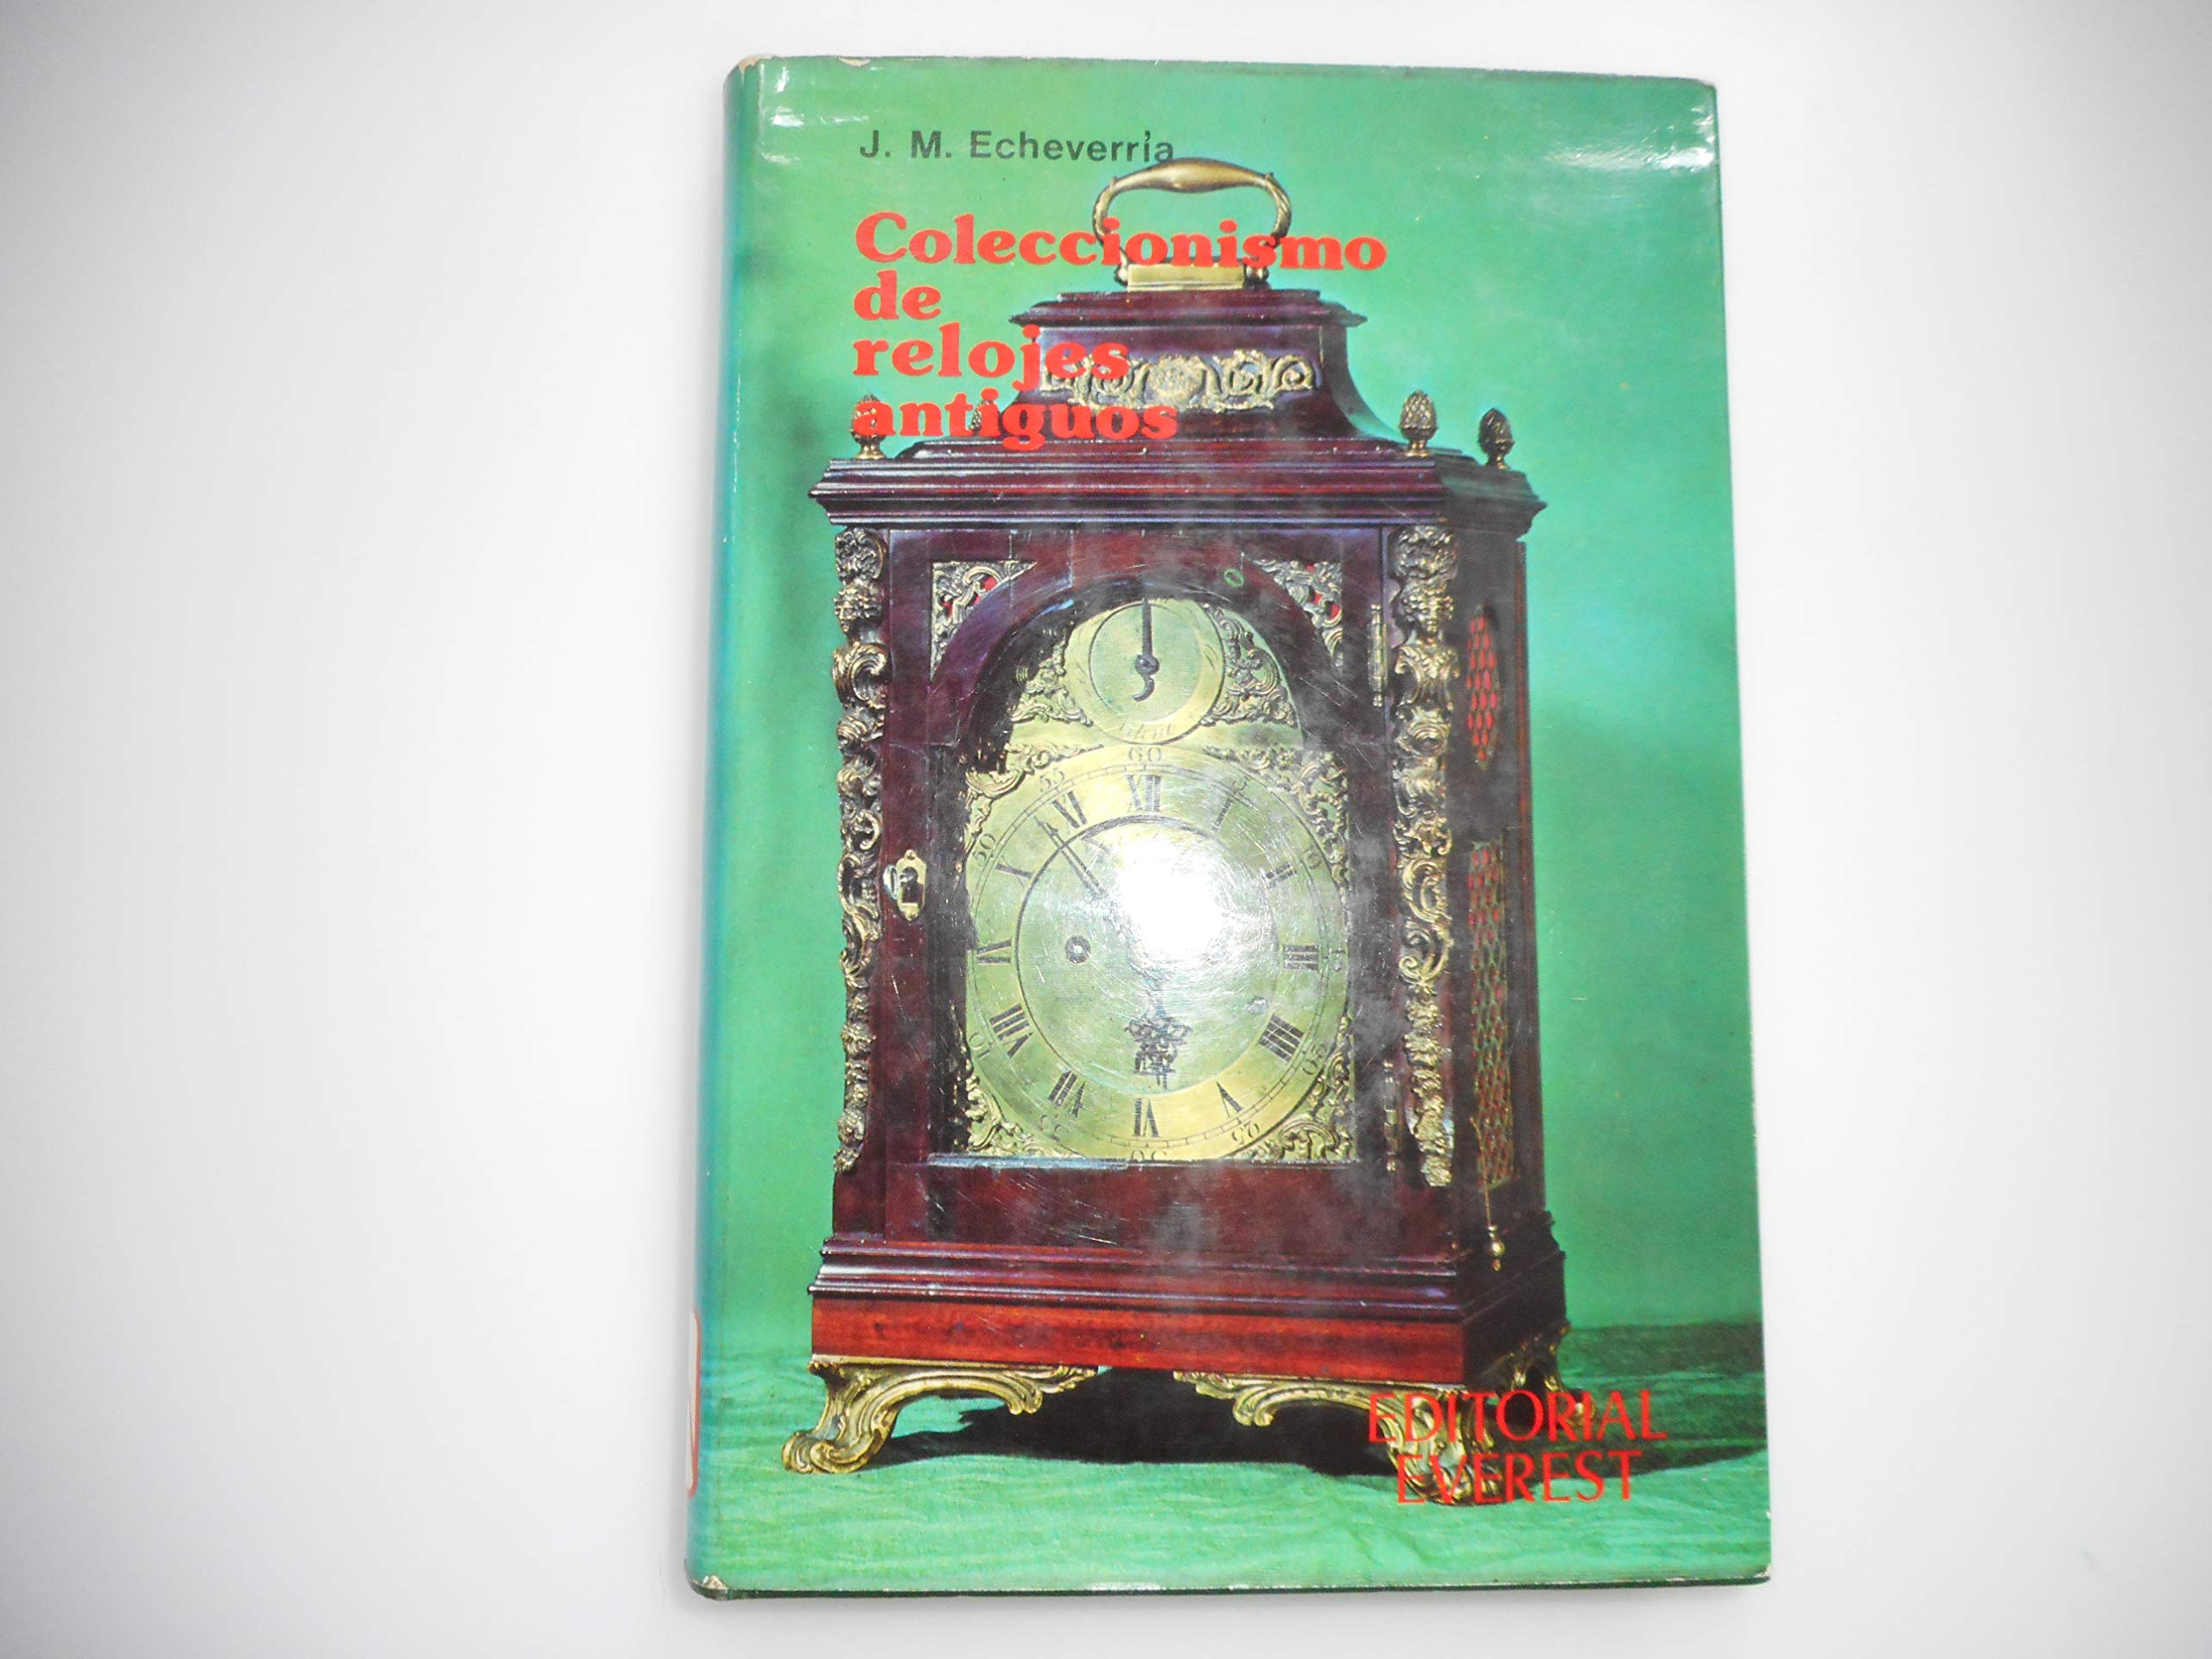 Coleccionismo de Relojes Antiguos (Club Everest) (Spanish Edition) (Spanish) Paperback – January, 1975